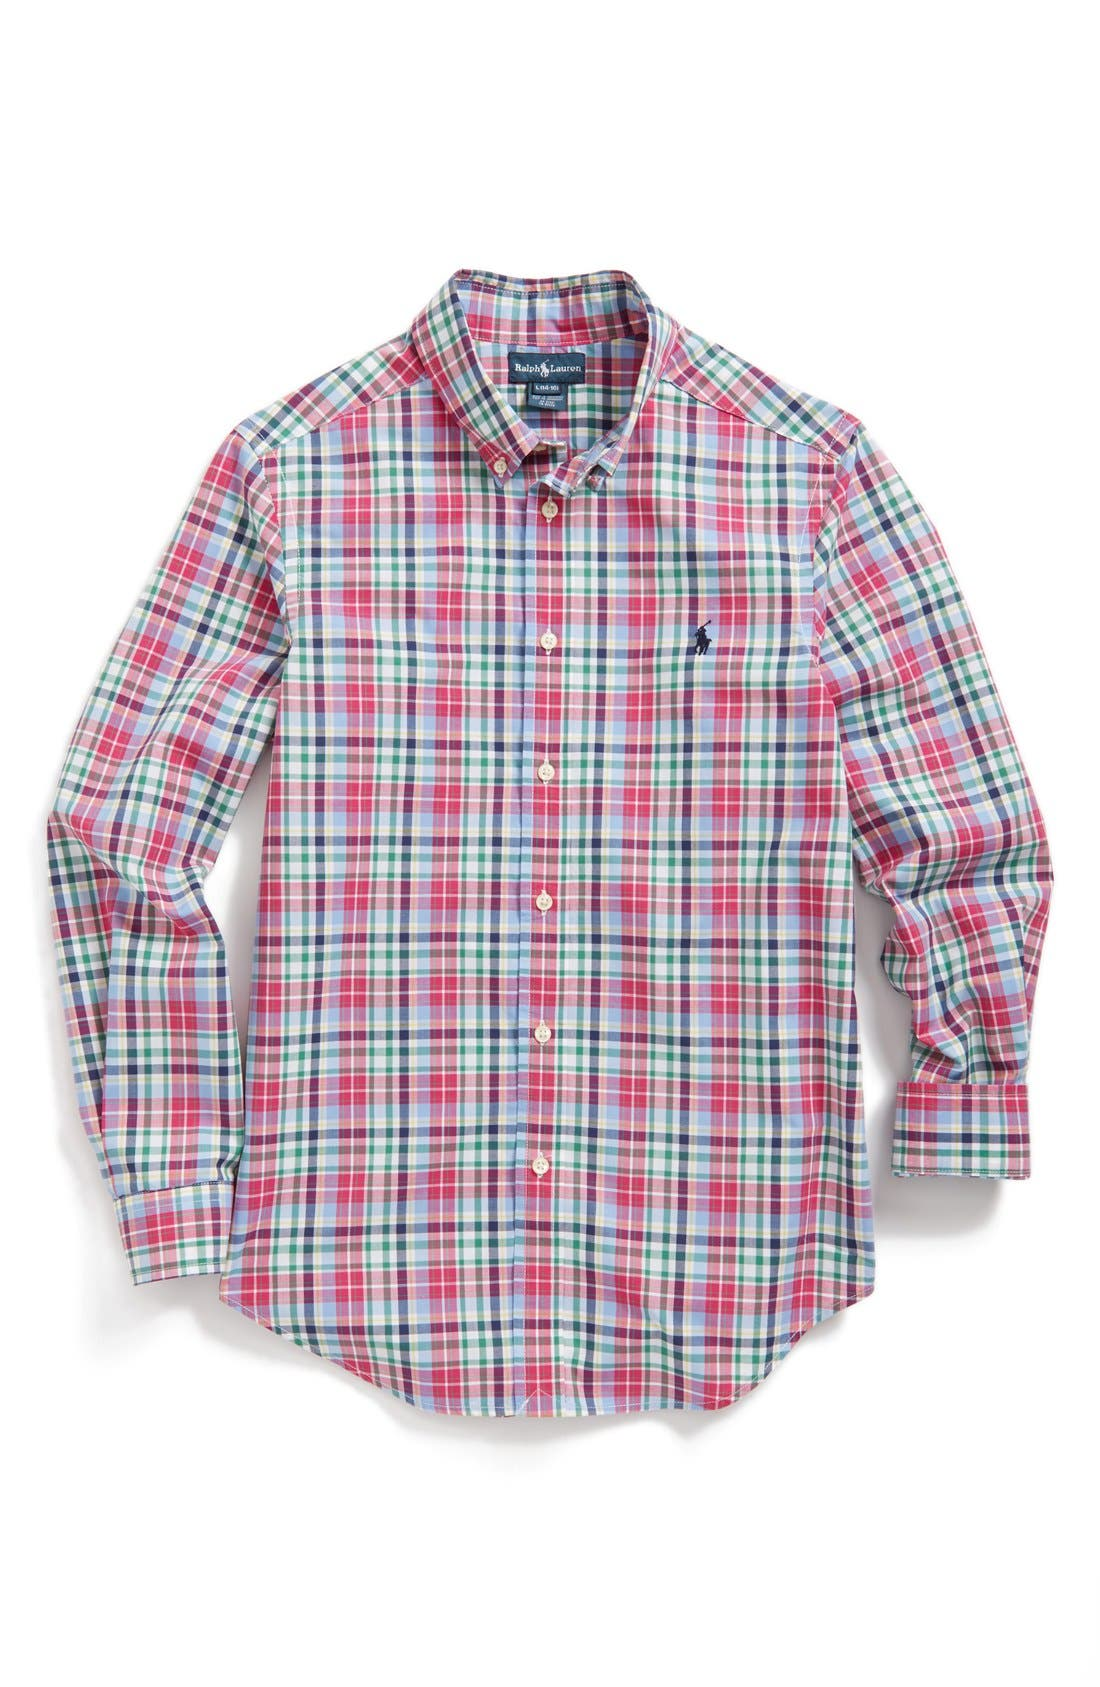 Alternate Image 1 Selected - Ralph Lauren Plaid Shirt (Big Boys)